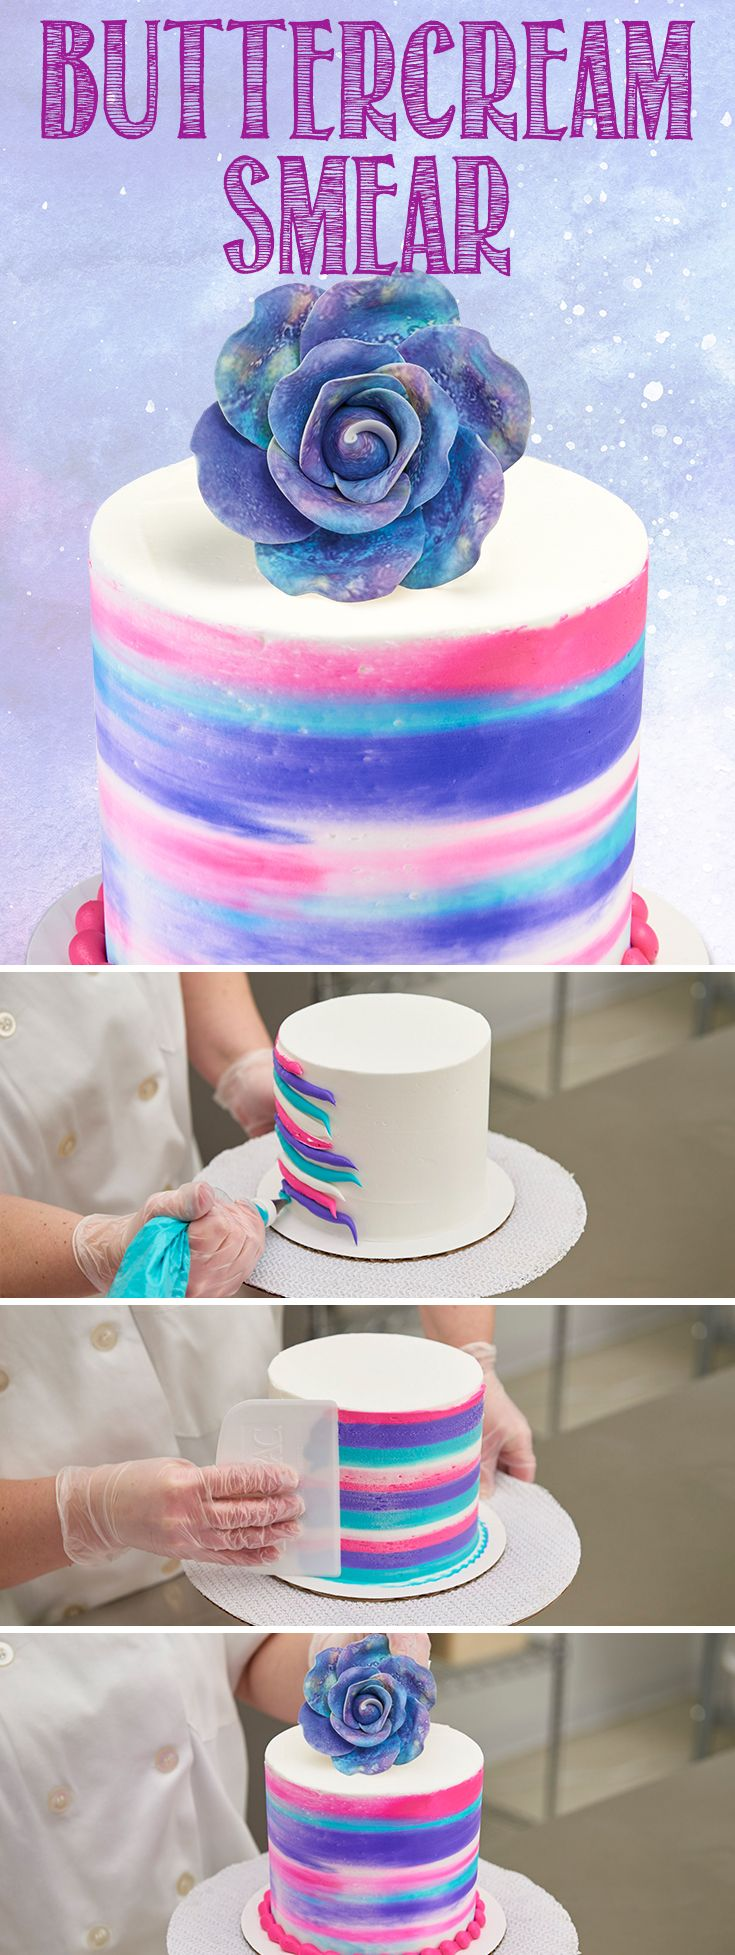 Pipe Large Bands Of Colored Buttercream Icing Then Use An -1515